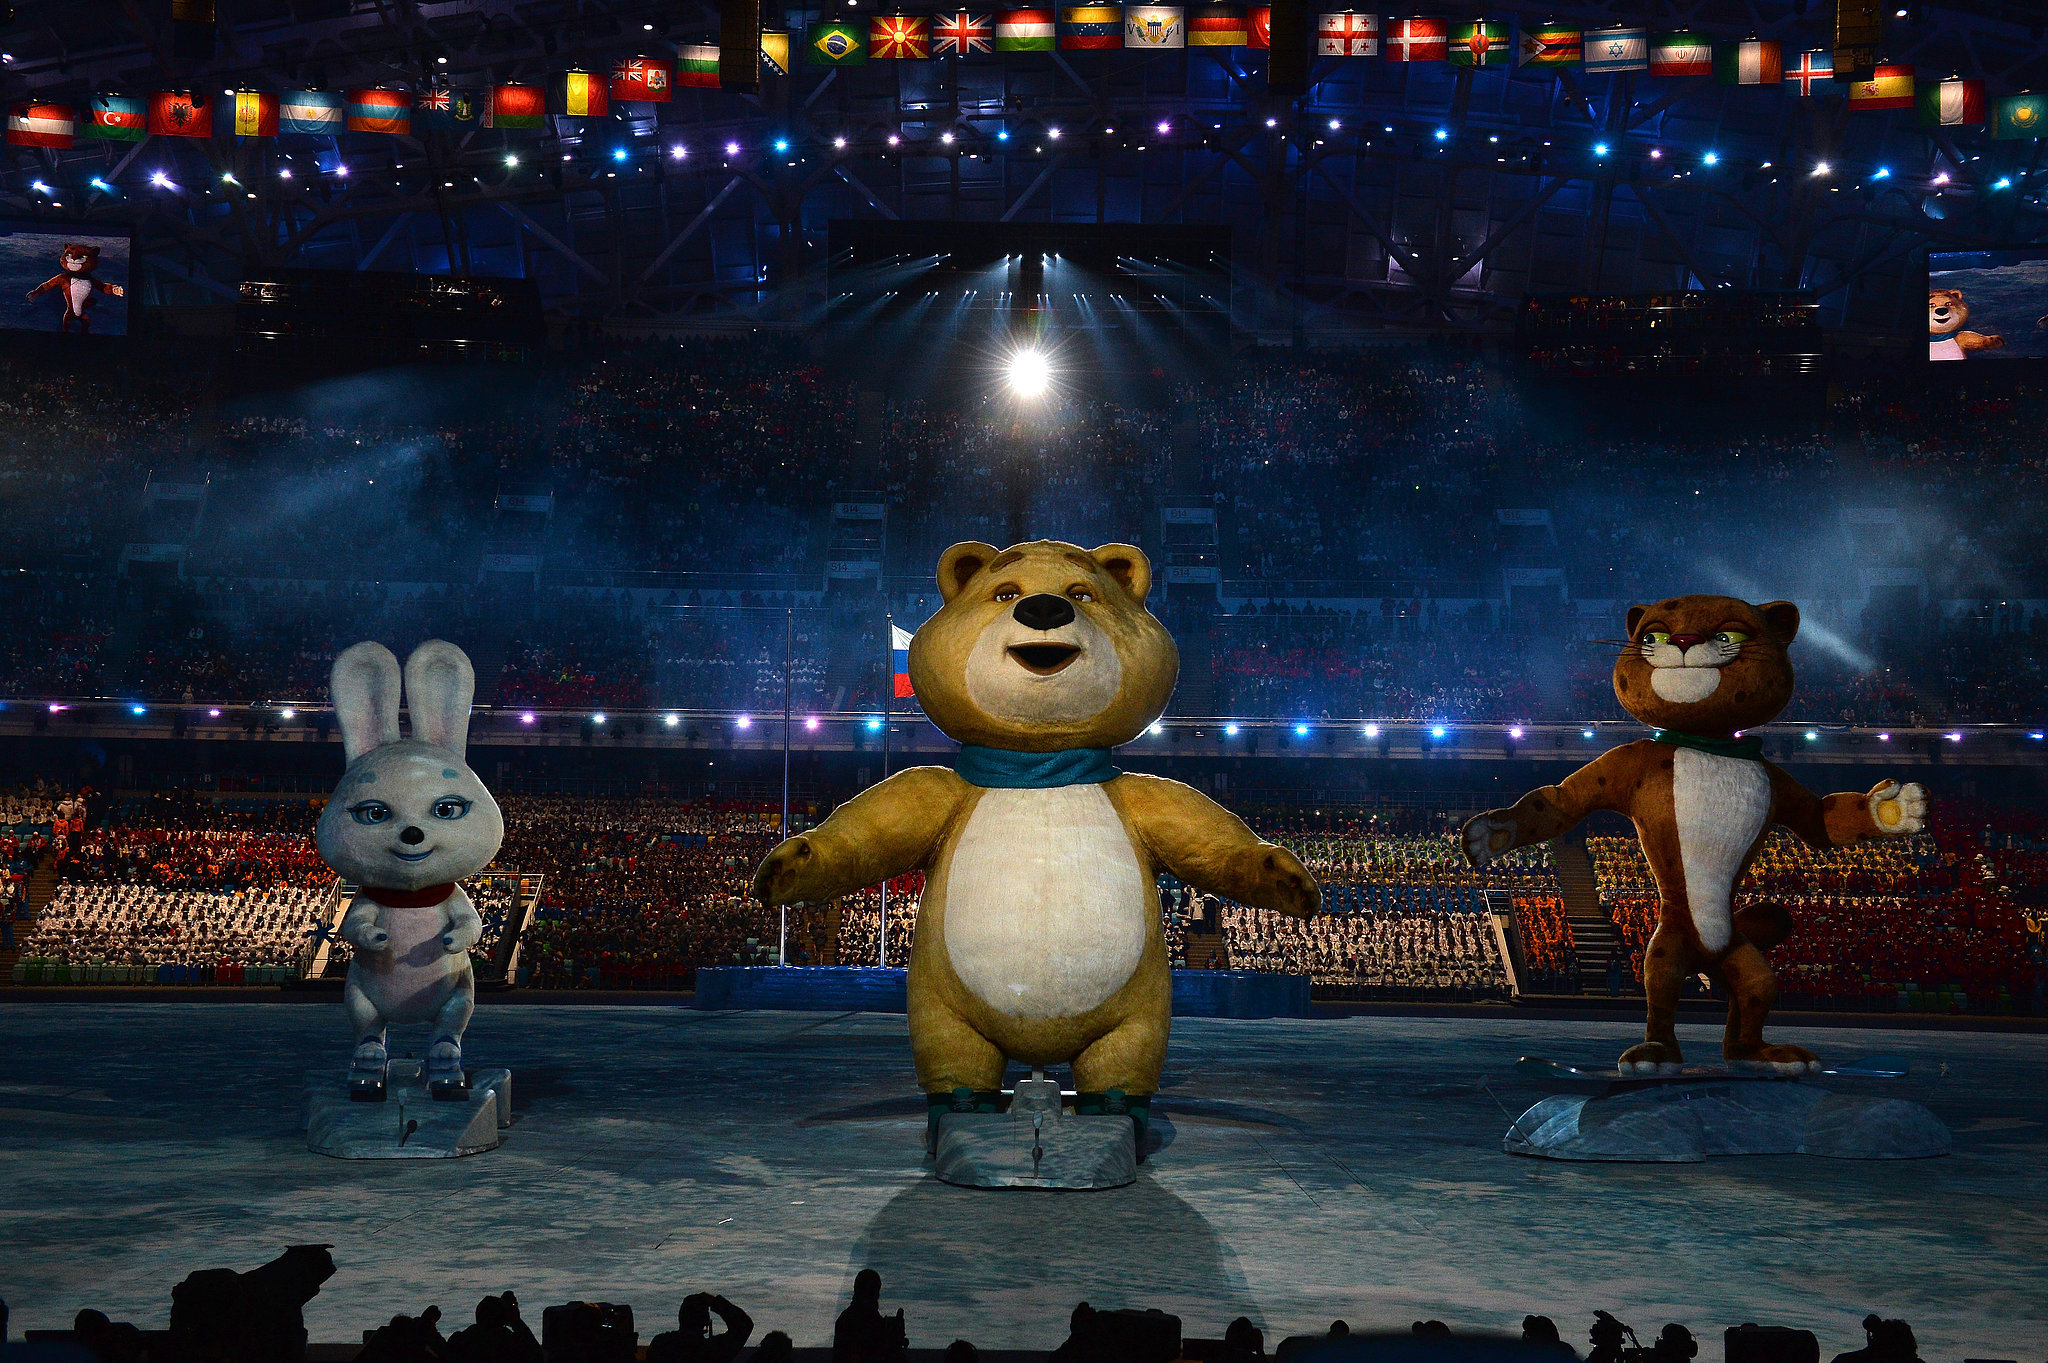 The Olympic mascots made an appearance during the opening ceremony.